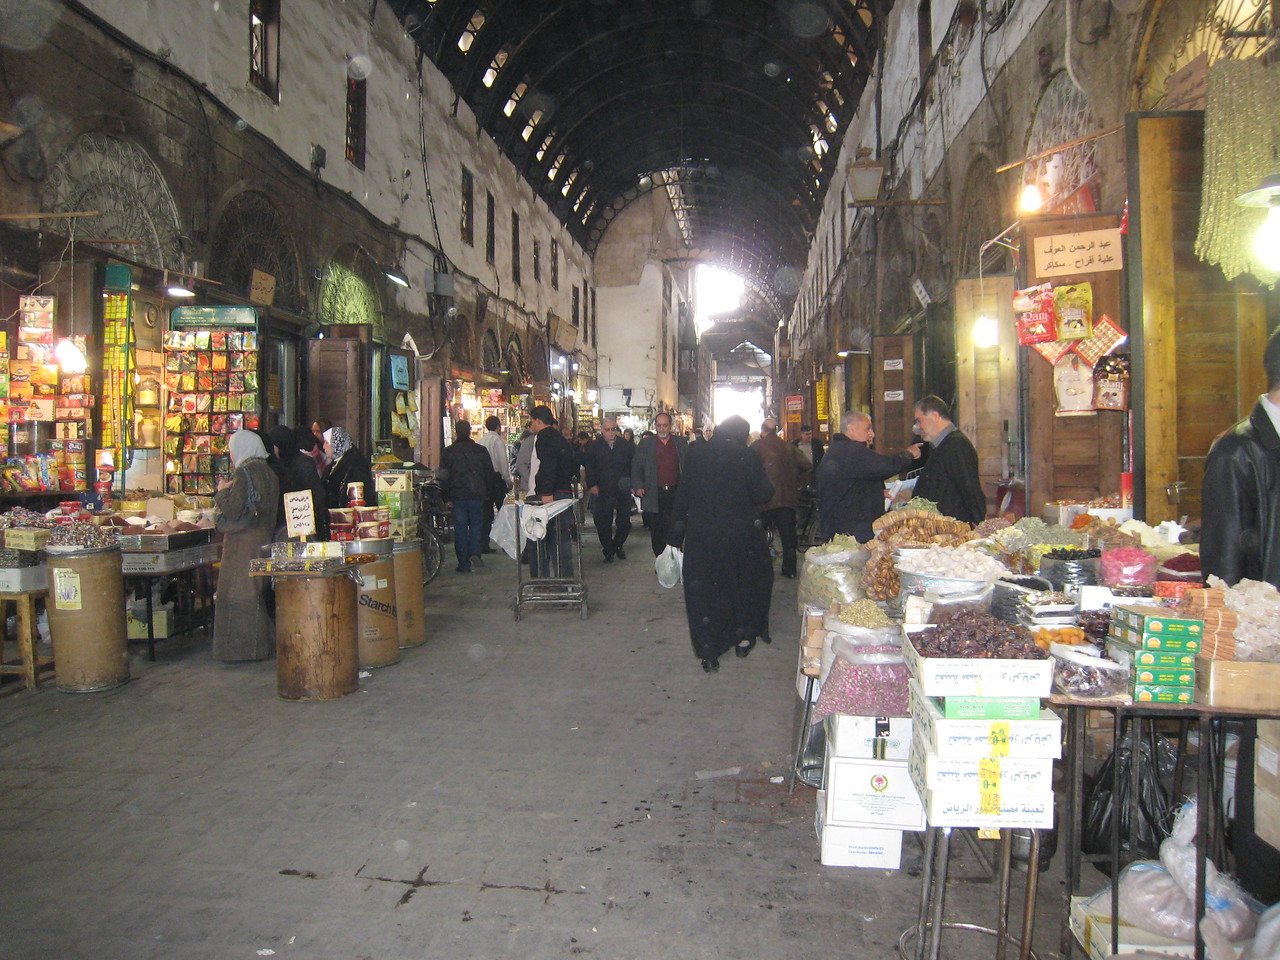 The spice souq in Damascus.